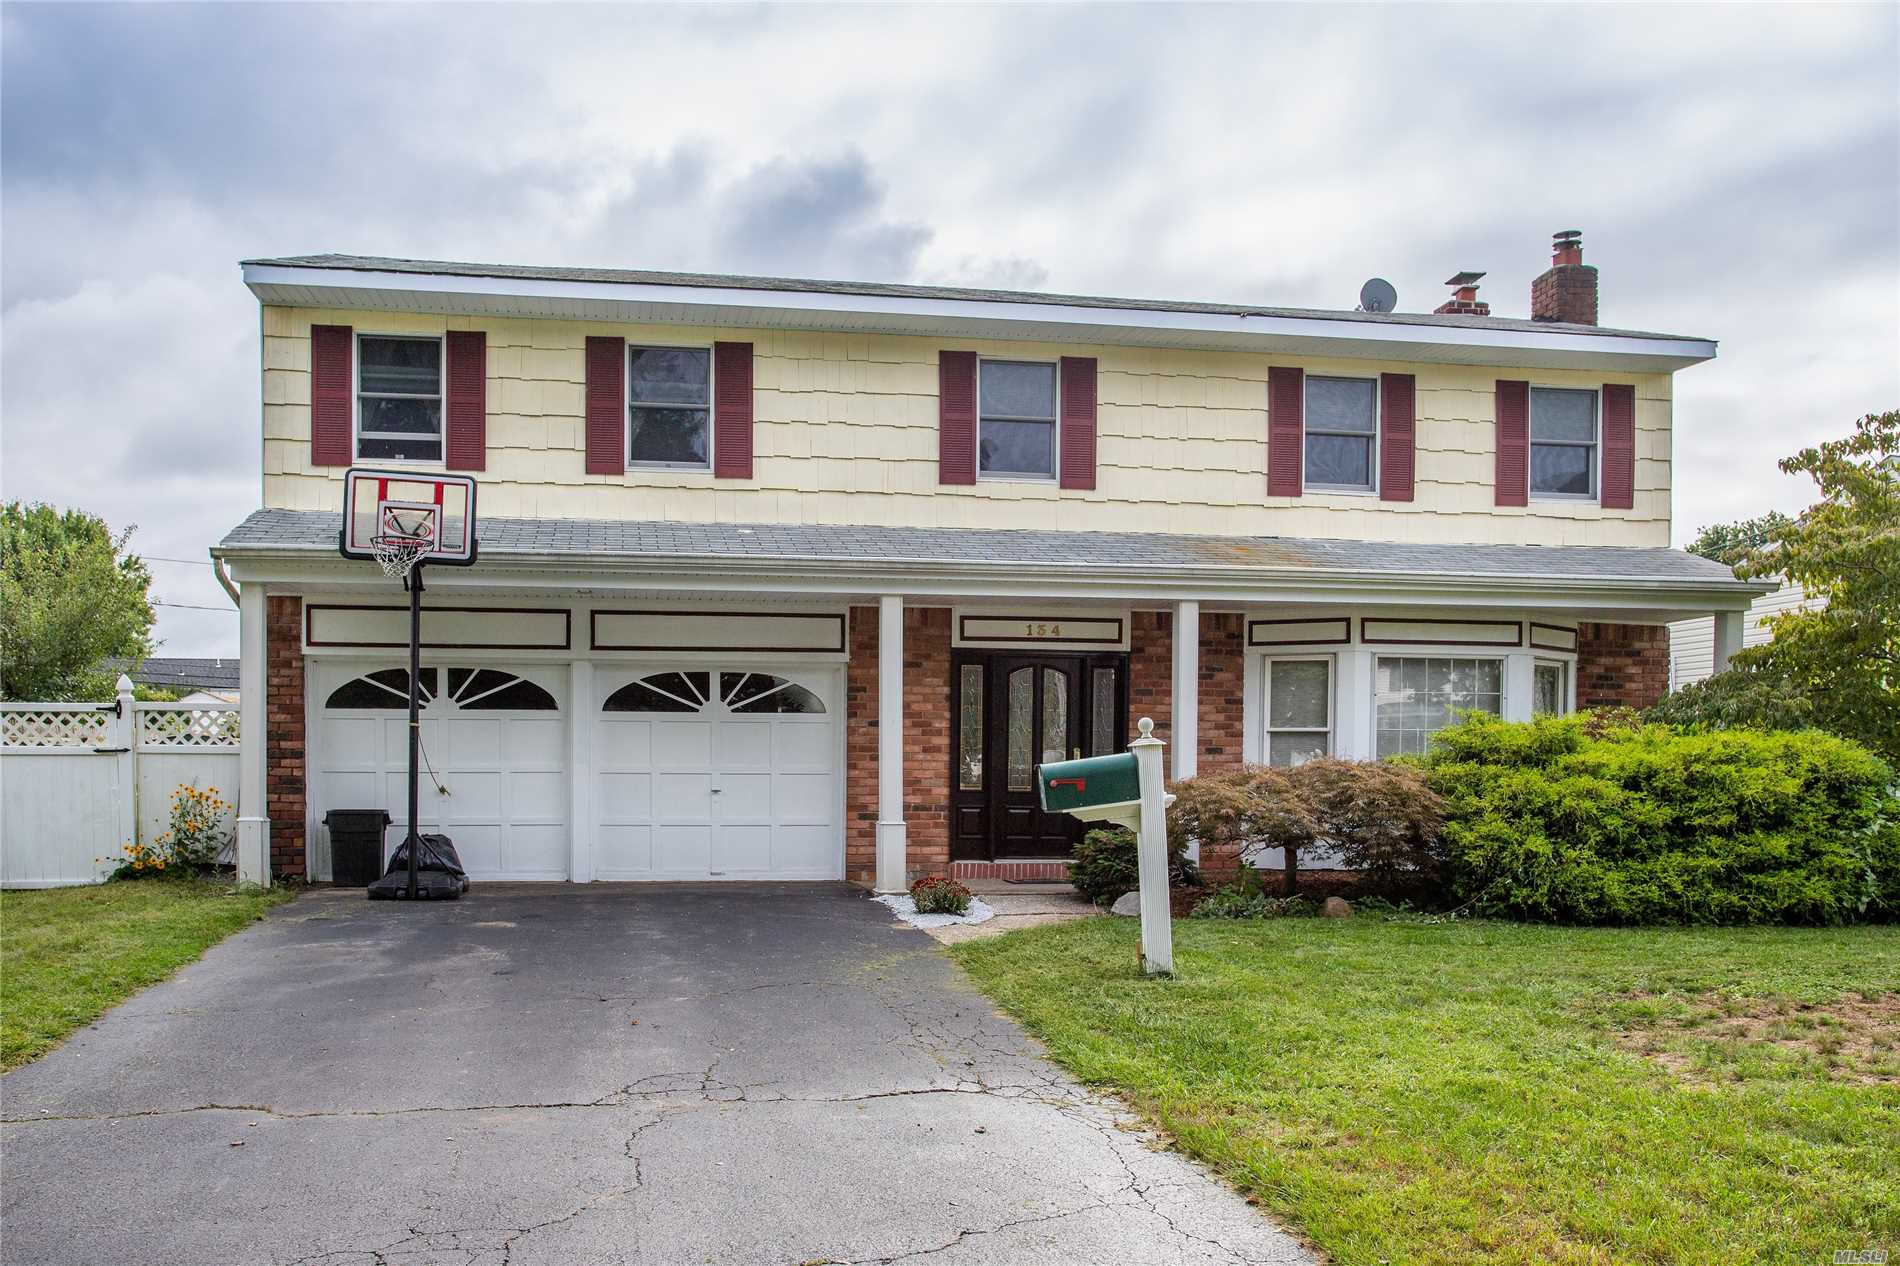 Brookfield Colonial! 4/5 Bedroom/2.5 Bath, Updated Kitchen W/Granite And Stainless Appliances, In-Ground Pool, 2 Car Garage, Large Bedrooms, Brand New Master Bath (Spa Beautiful!), Central Air, Basement, Wood Floors, Large Formal Dining Room, Wood Burning Fireplace, Family Room W/Glass Slider To Pool.....